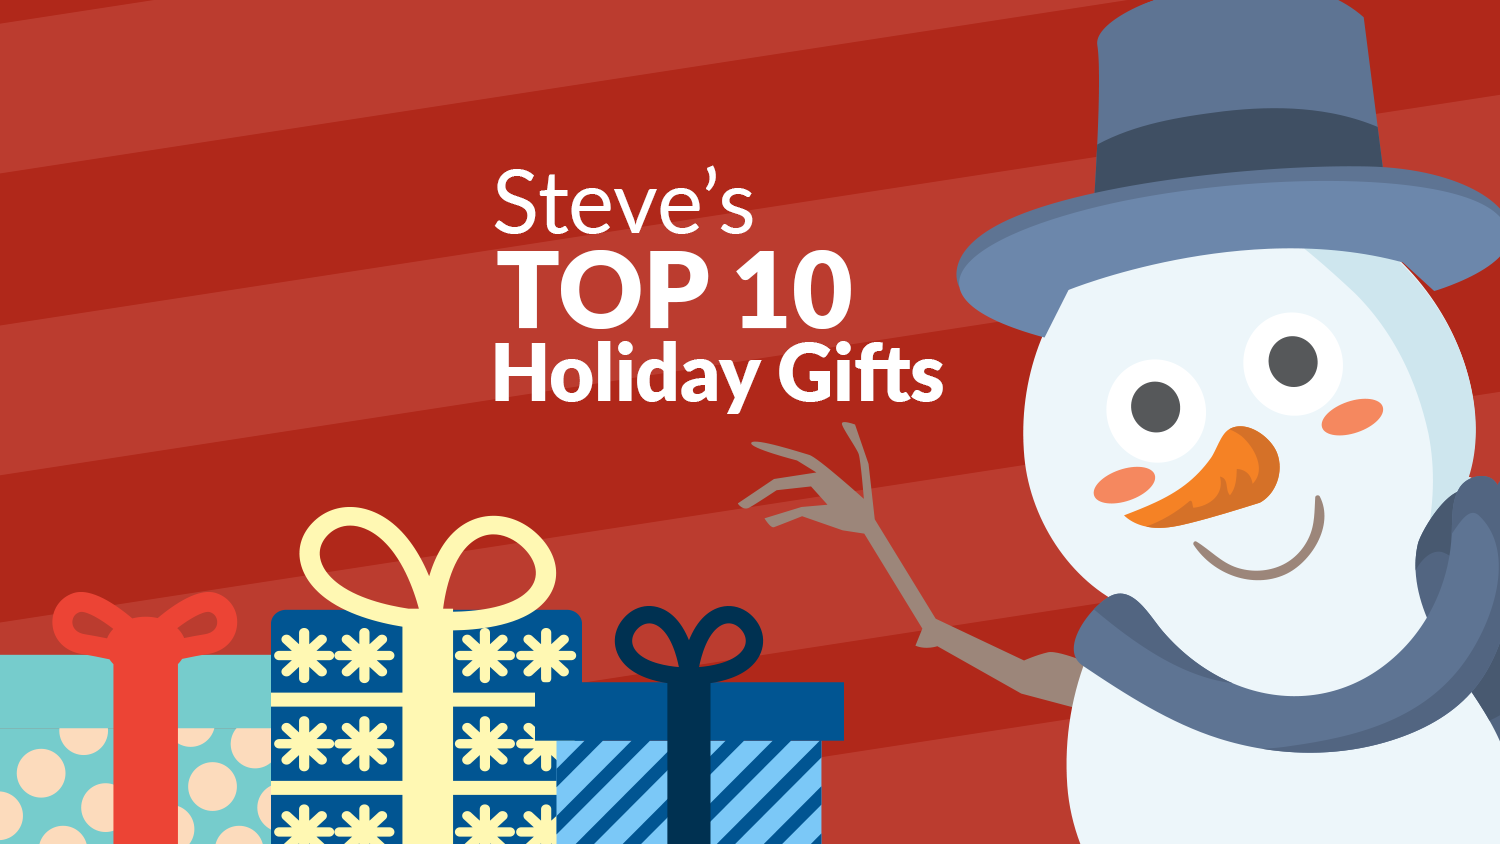 Steve's TOP 10 Holiday Gifts